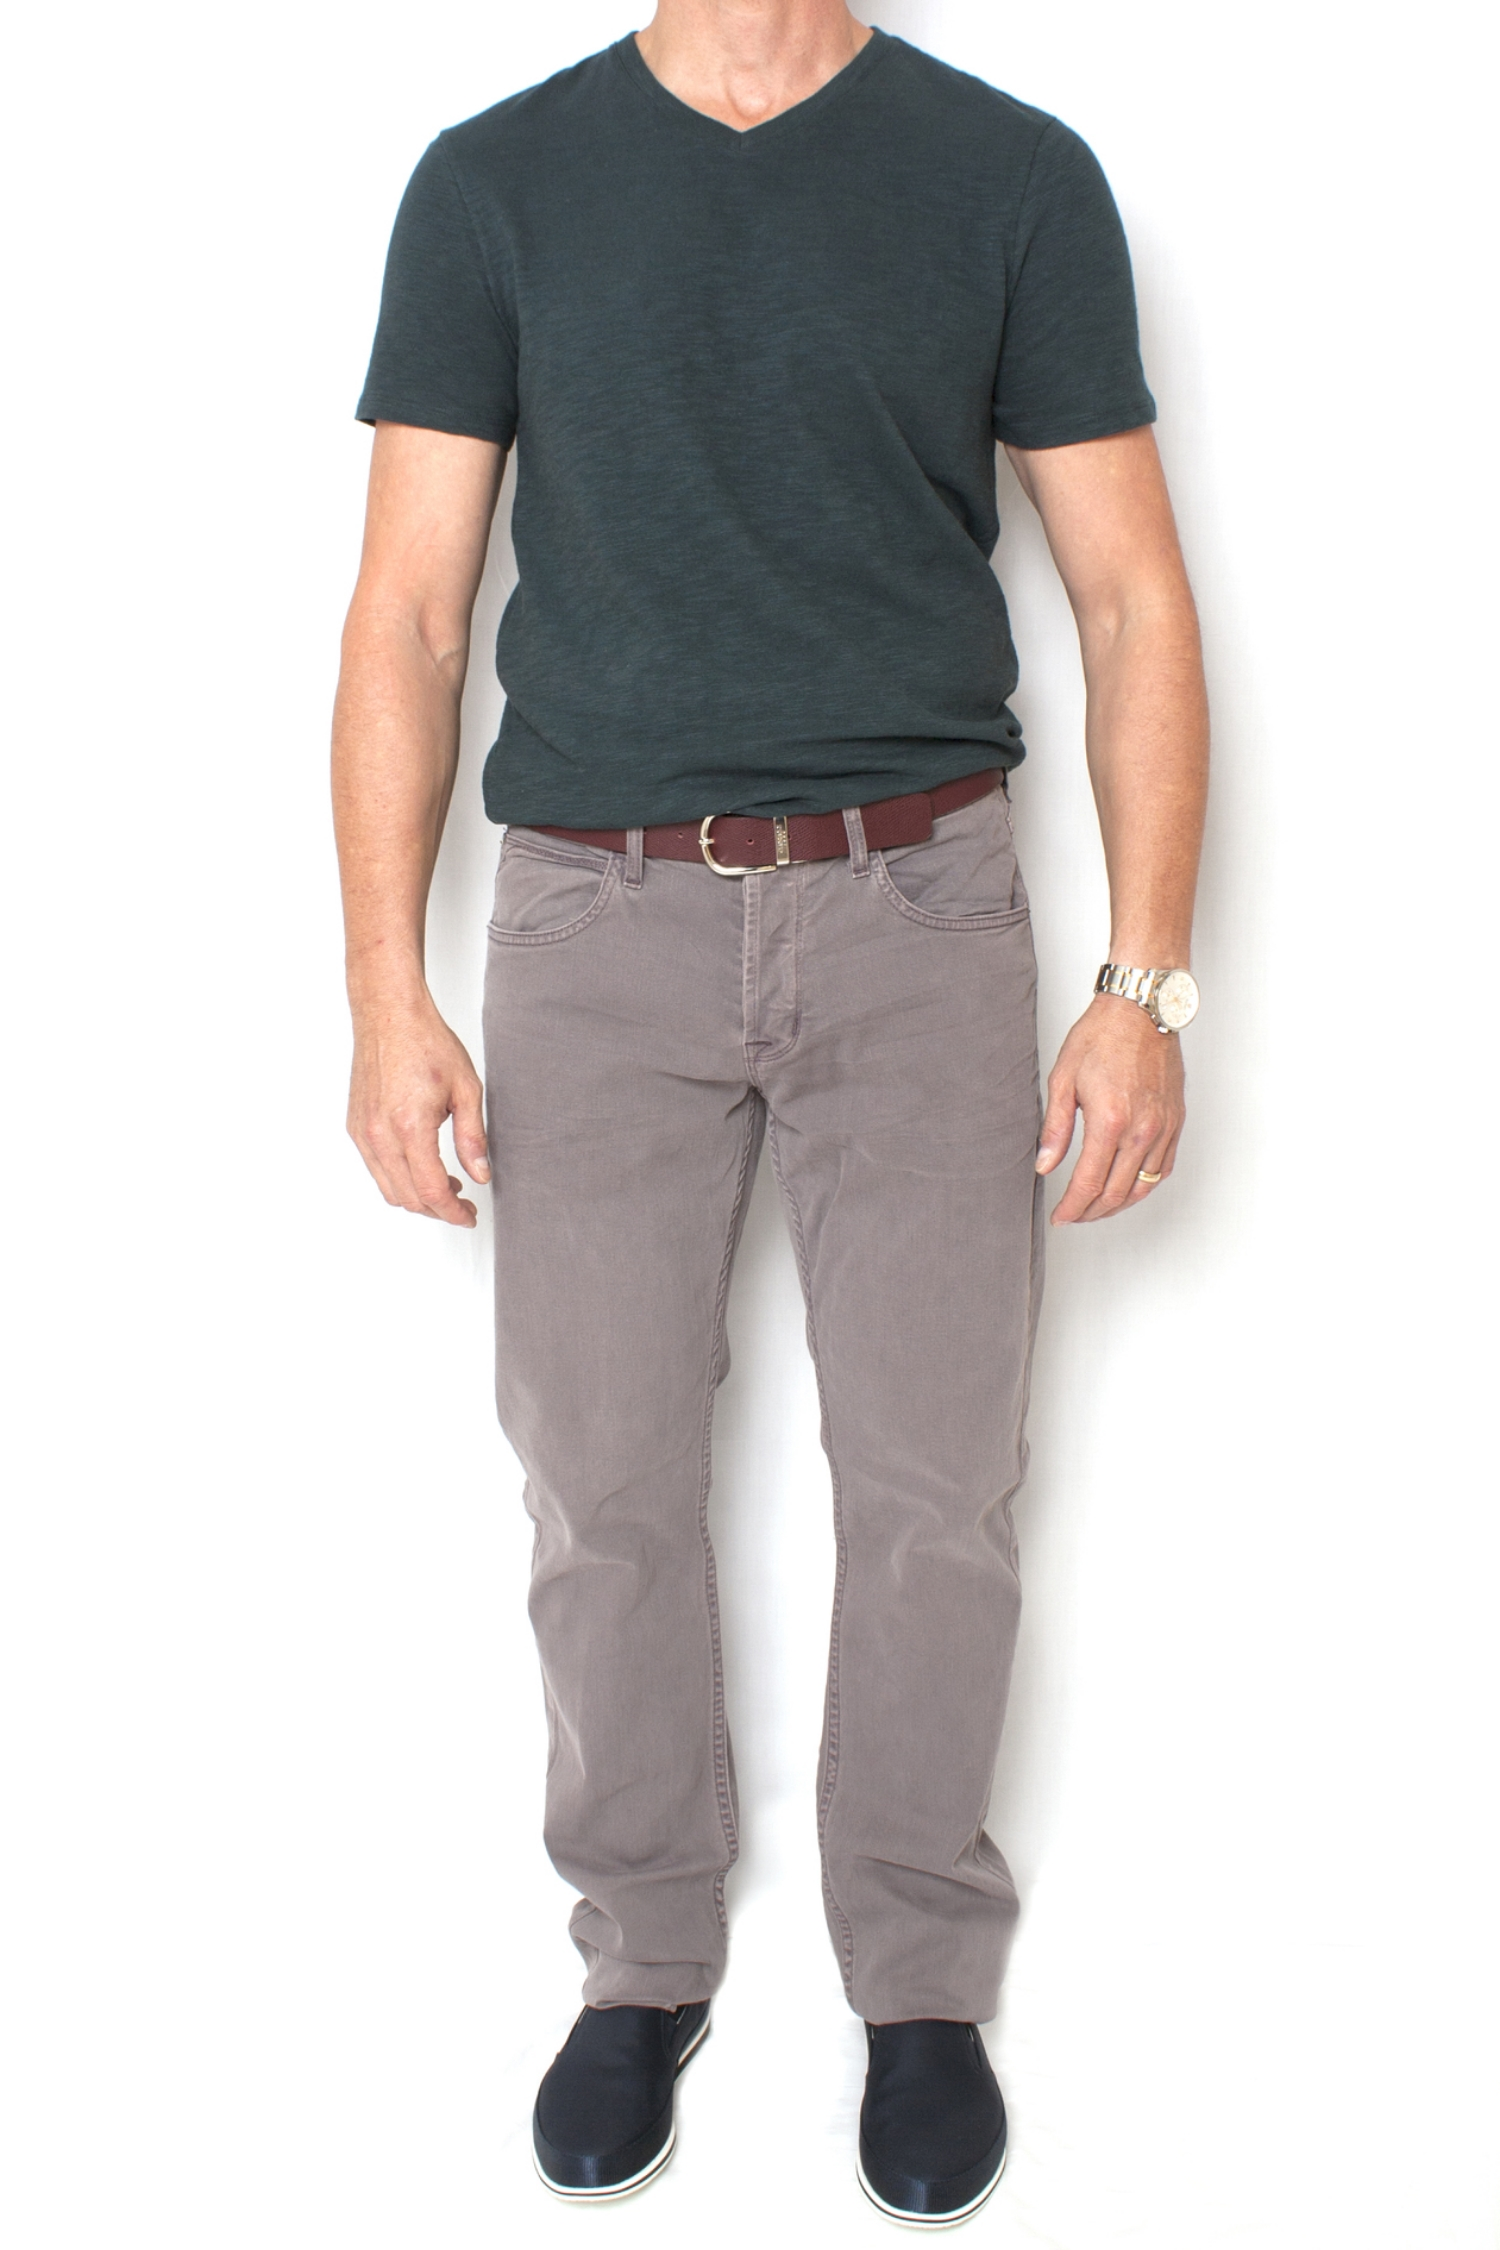 Tech CasuaL - More so than in any other business casual flavor, comfort and utility rule the domain of tech casual. The range here includes all types of denim with untucked button-downs or T-shirts, and on the dressier end are chinos and any shirt with a collar.Once you identify which business casual flavor you're going with, the next step is to personalize it to truly feel like you, and capture your individual style and image. I'll show you how to do just that in an upcoming post. In the mean time, you can check out The Business Casual Survival Guide: 30 Looks for Men, it's the only guide you'll ever need to take control of your style for work and weekend.